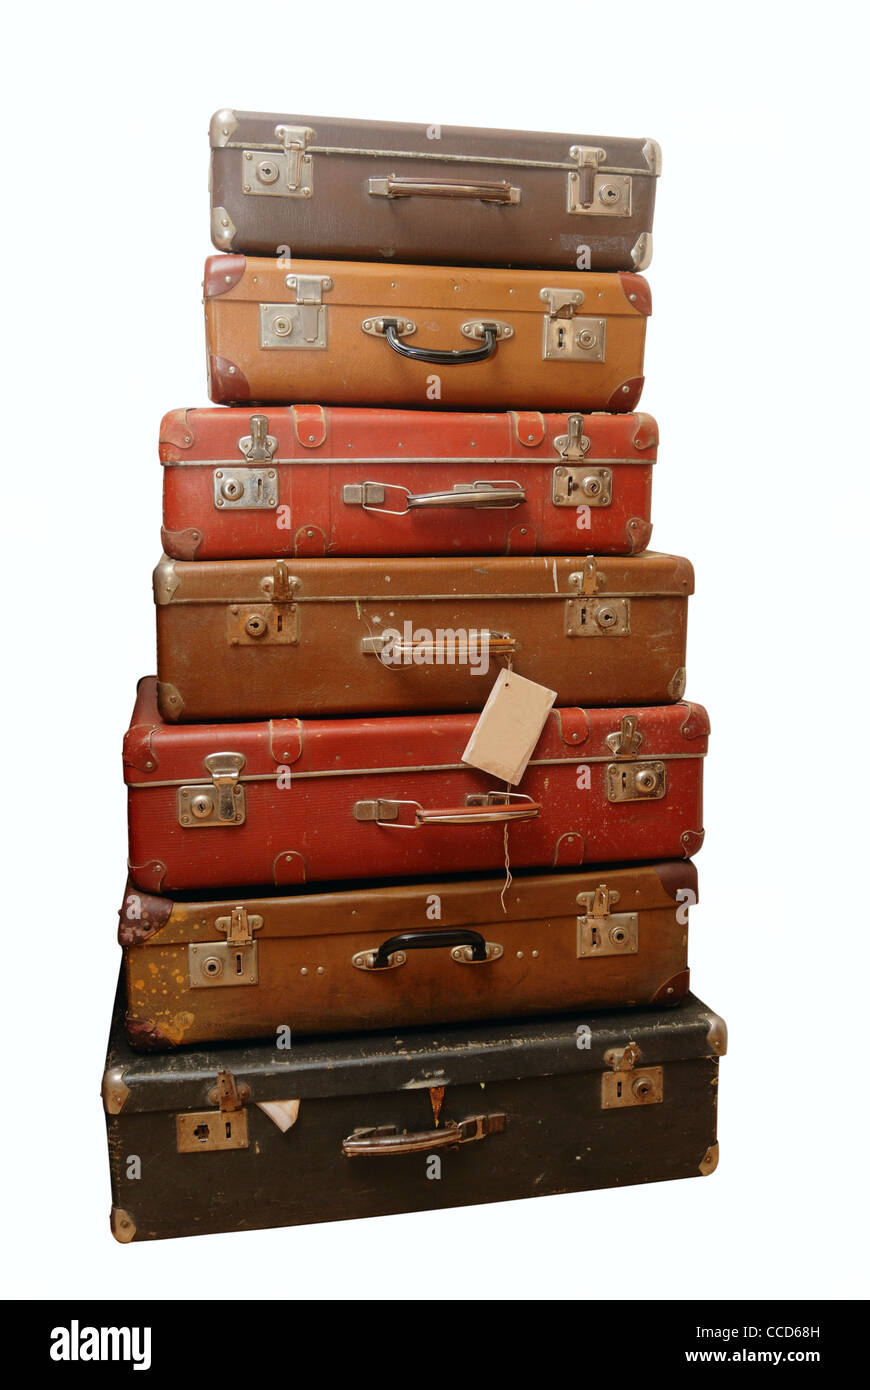 Pile of battered old suitcases and trunks in poor condition - Stock Image